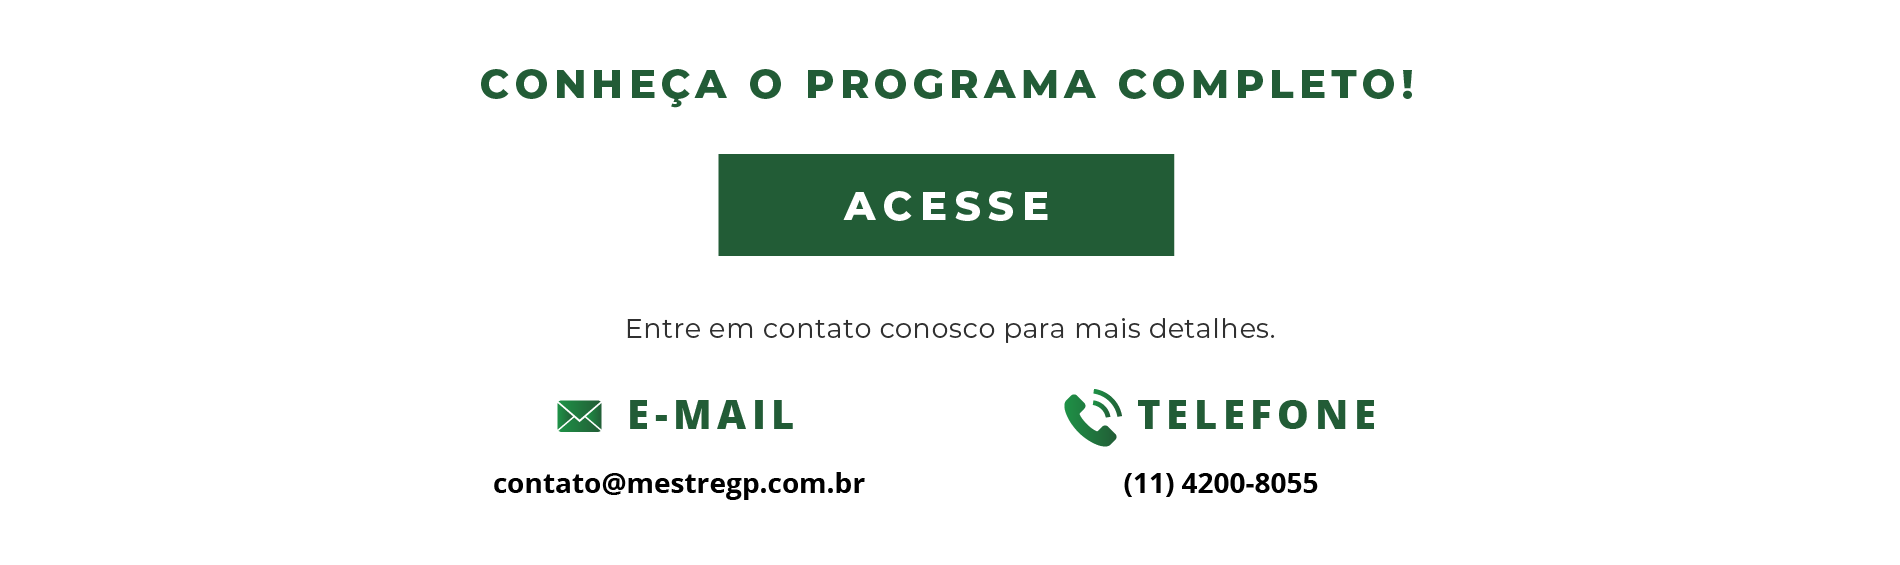 https://www.mestregp.com.br/wp-content/uploads/2018/01/MGP_Treinamento-slice-05-1900x565.png